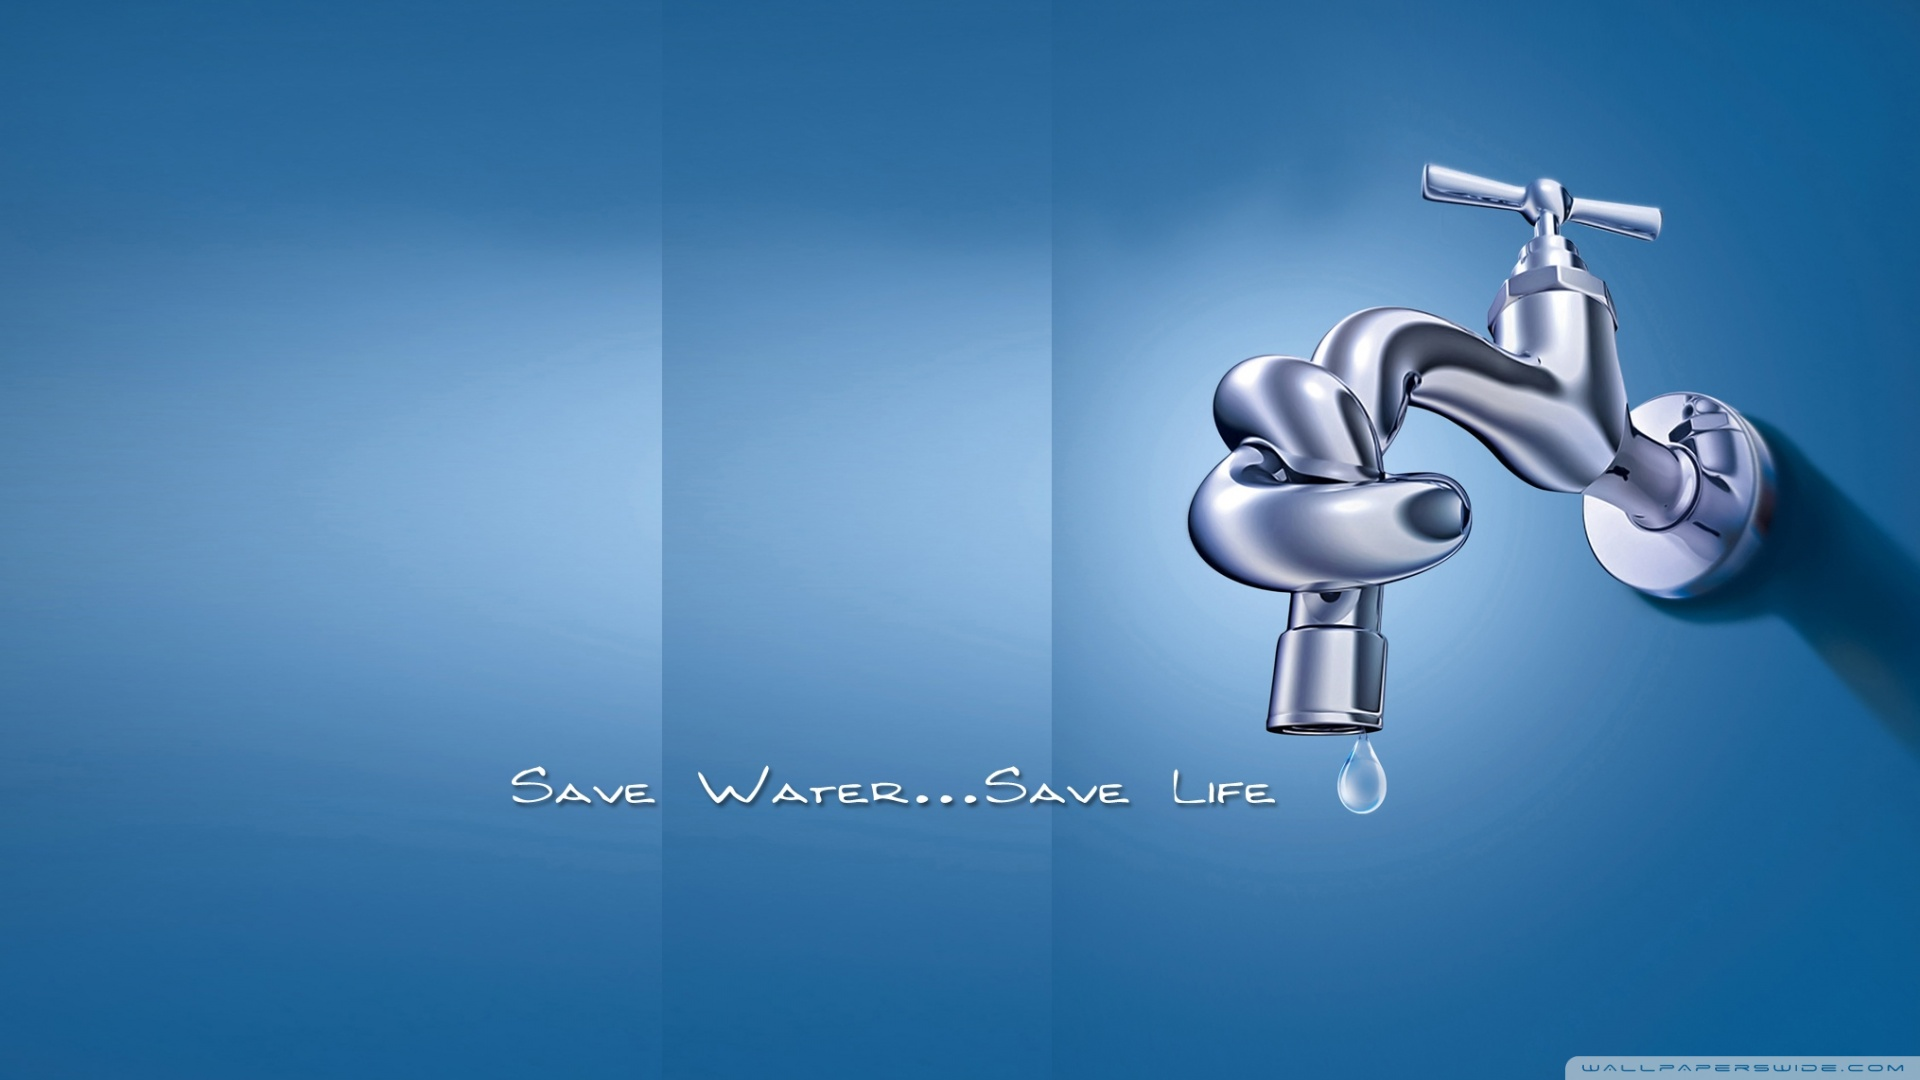 Save Water 4K HD Desktop Wallpaper for 4K Ultra HD TV